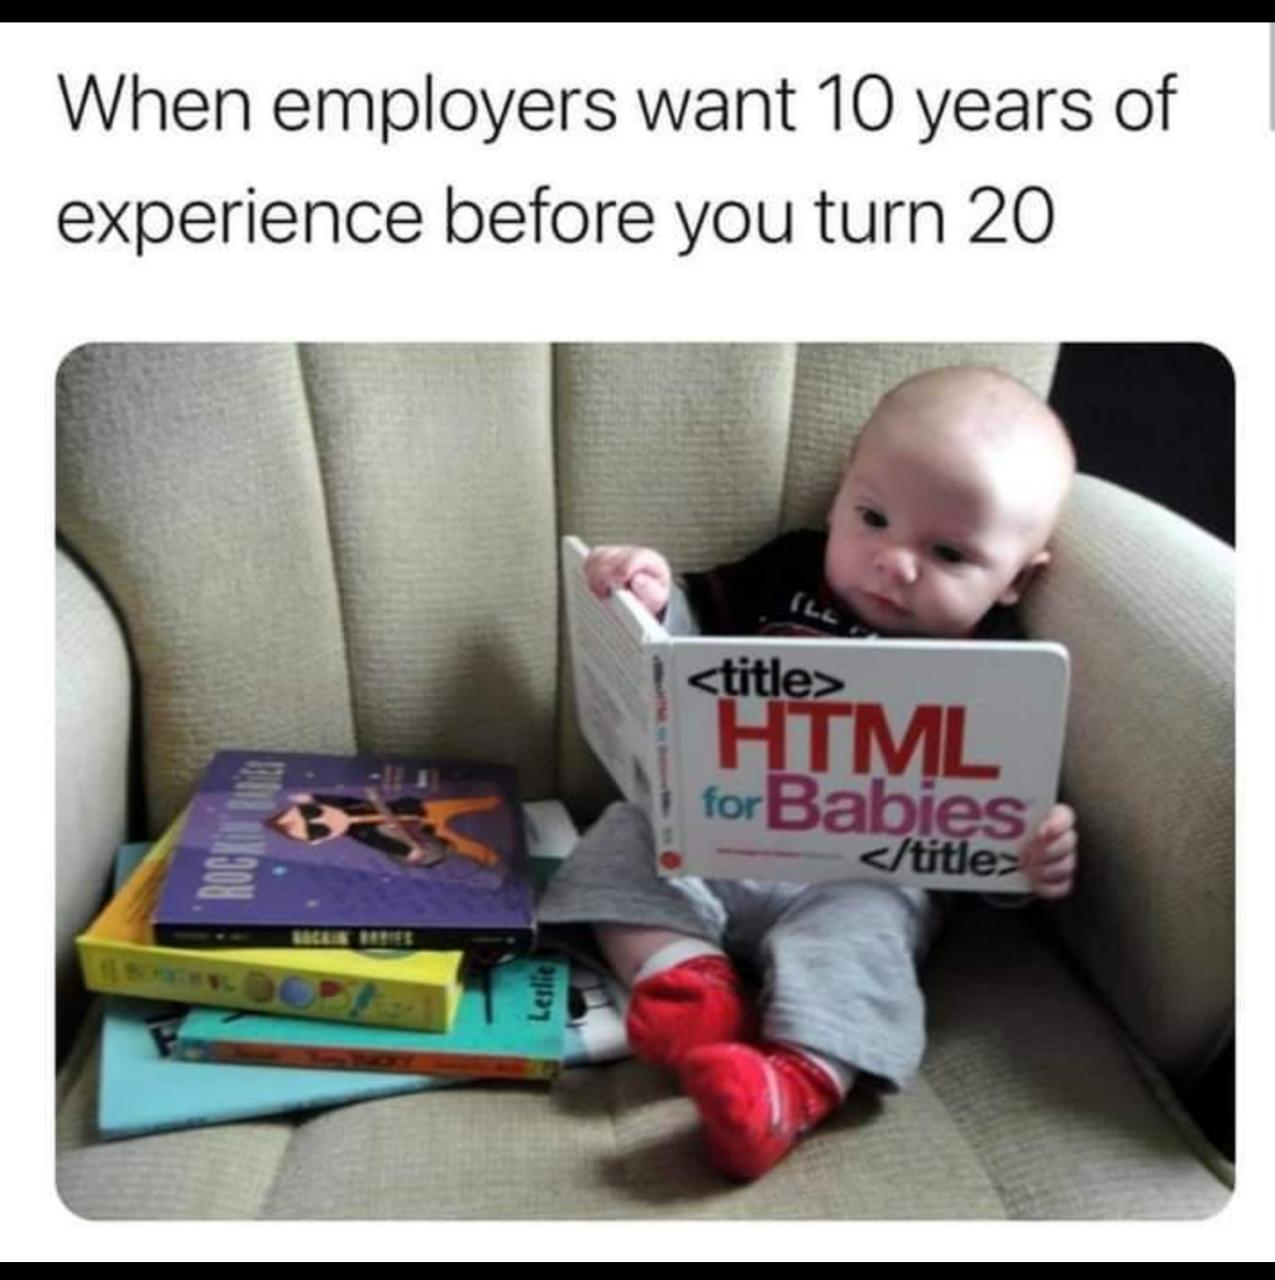 when employers want 10 years of experience before you turn 20